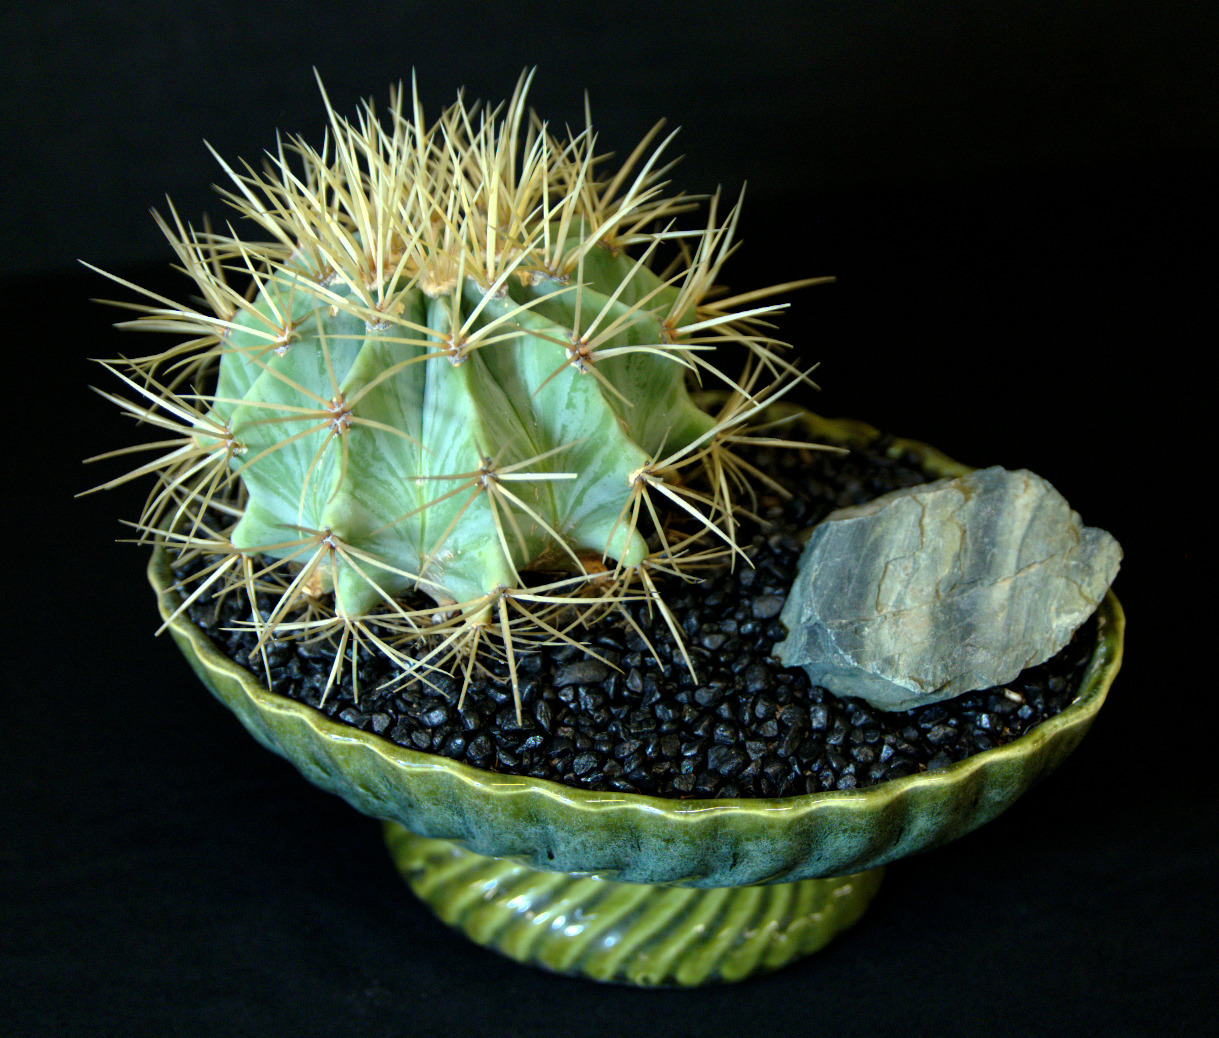 SCCSS 2016 March - Winner Intermediate Cactus - Phyllis DeCrescenzo - Ferocactus pilosus